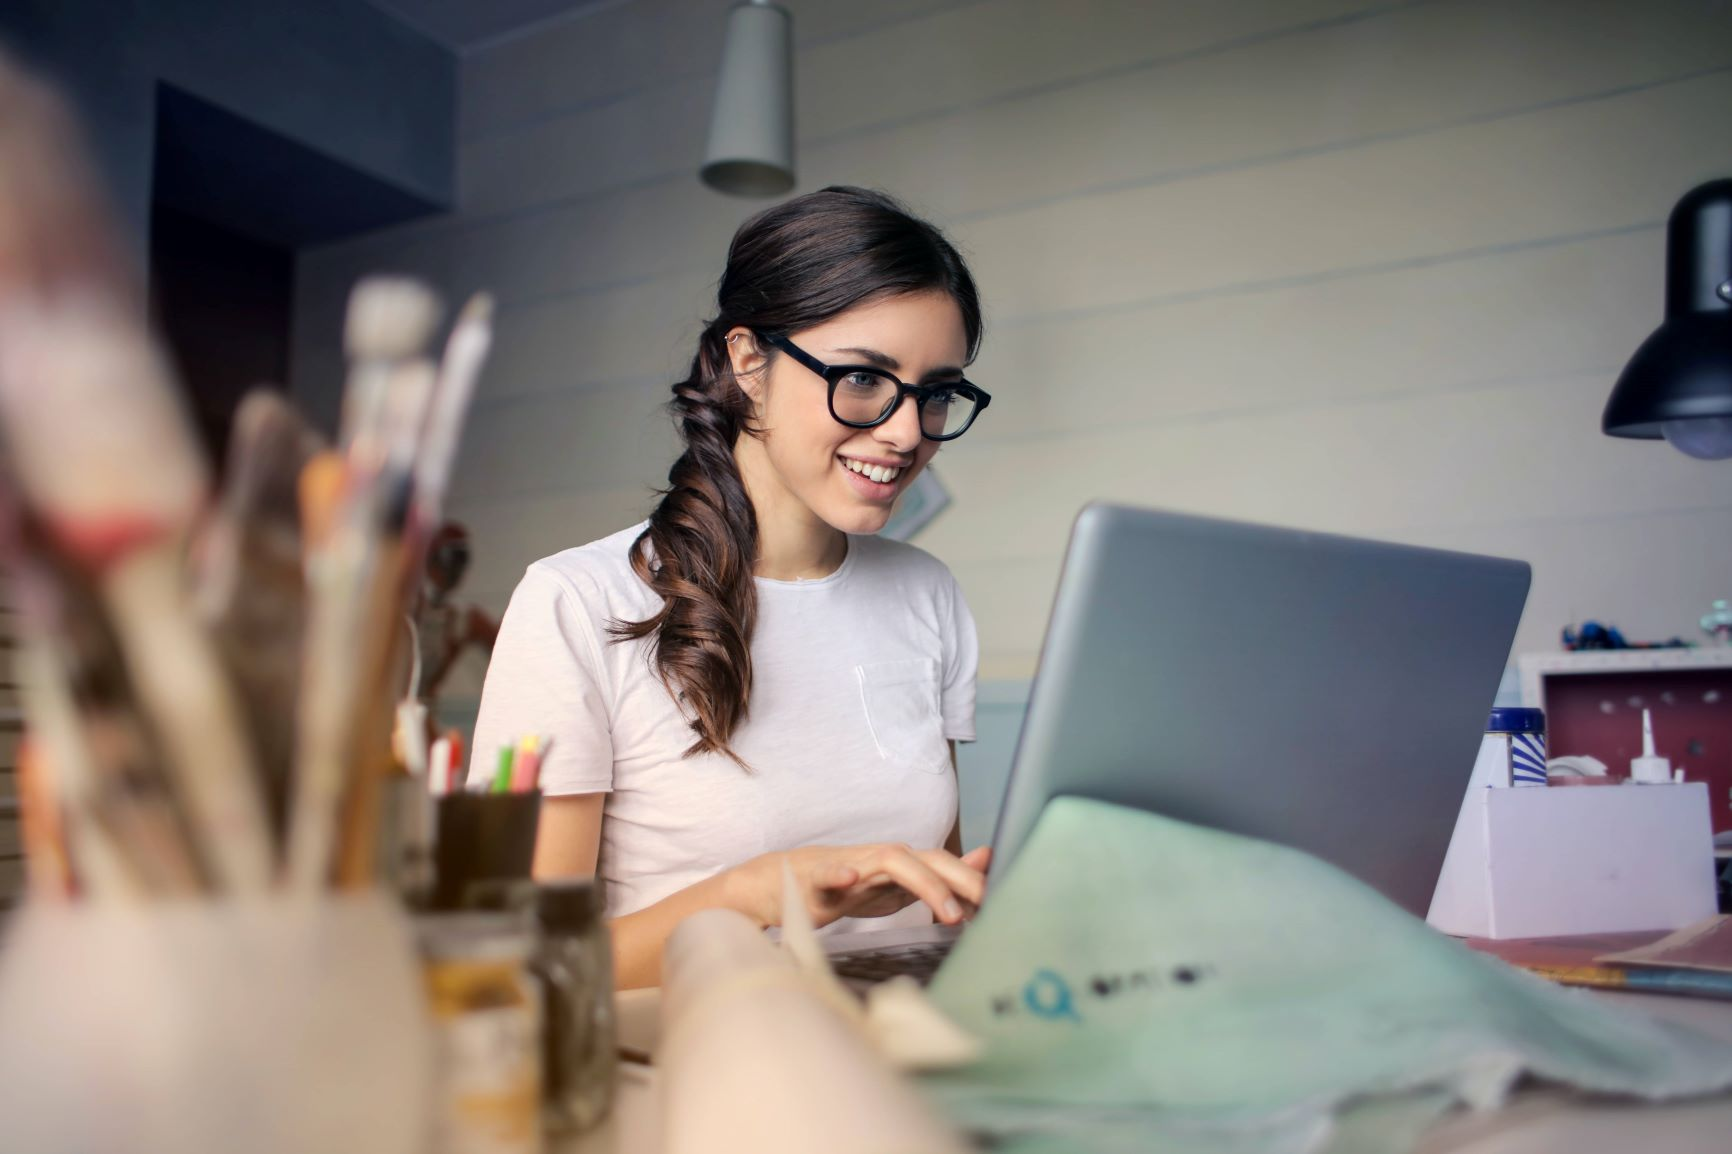 How To Make Money From Home As A Teenager